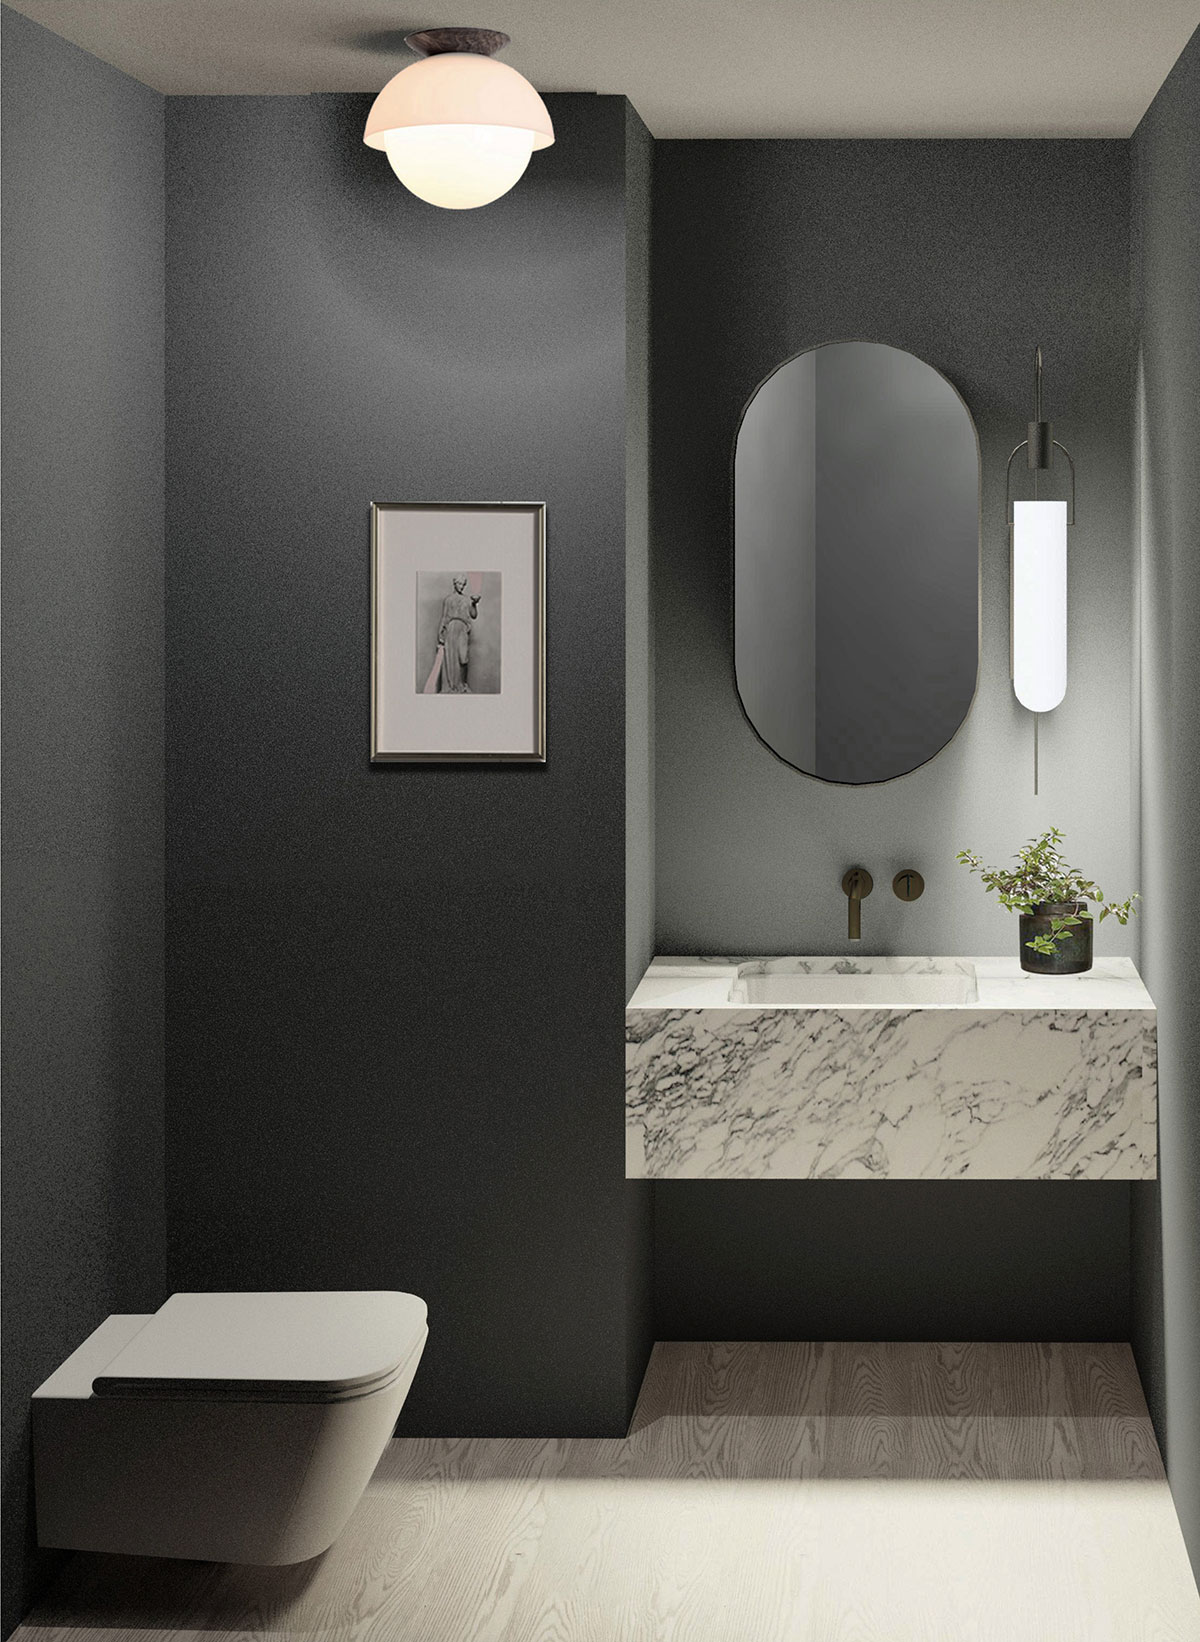 Guest bathroom of the Residence renovation project on the East Side of Manhattan, New York City designed by the architecture studio Danny Forster & Architecture